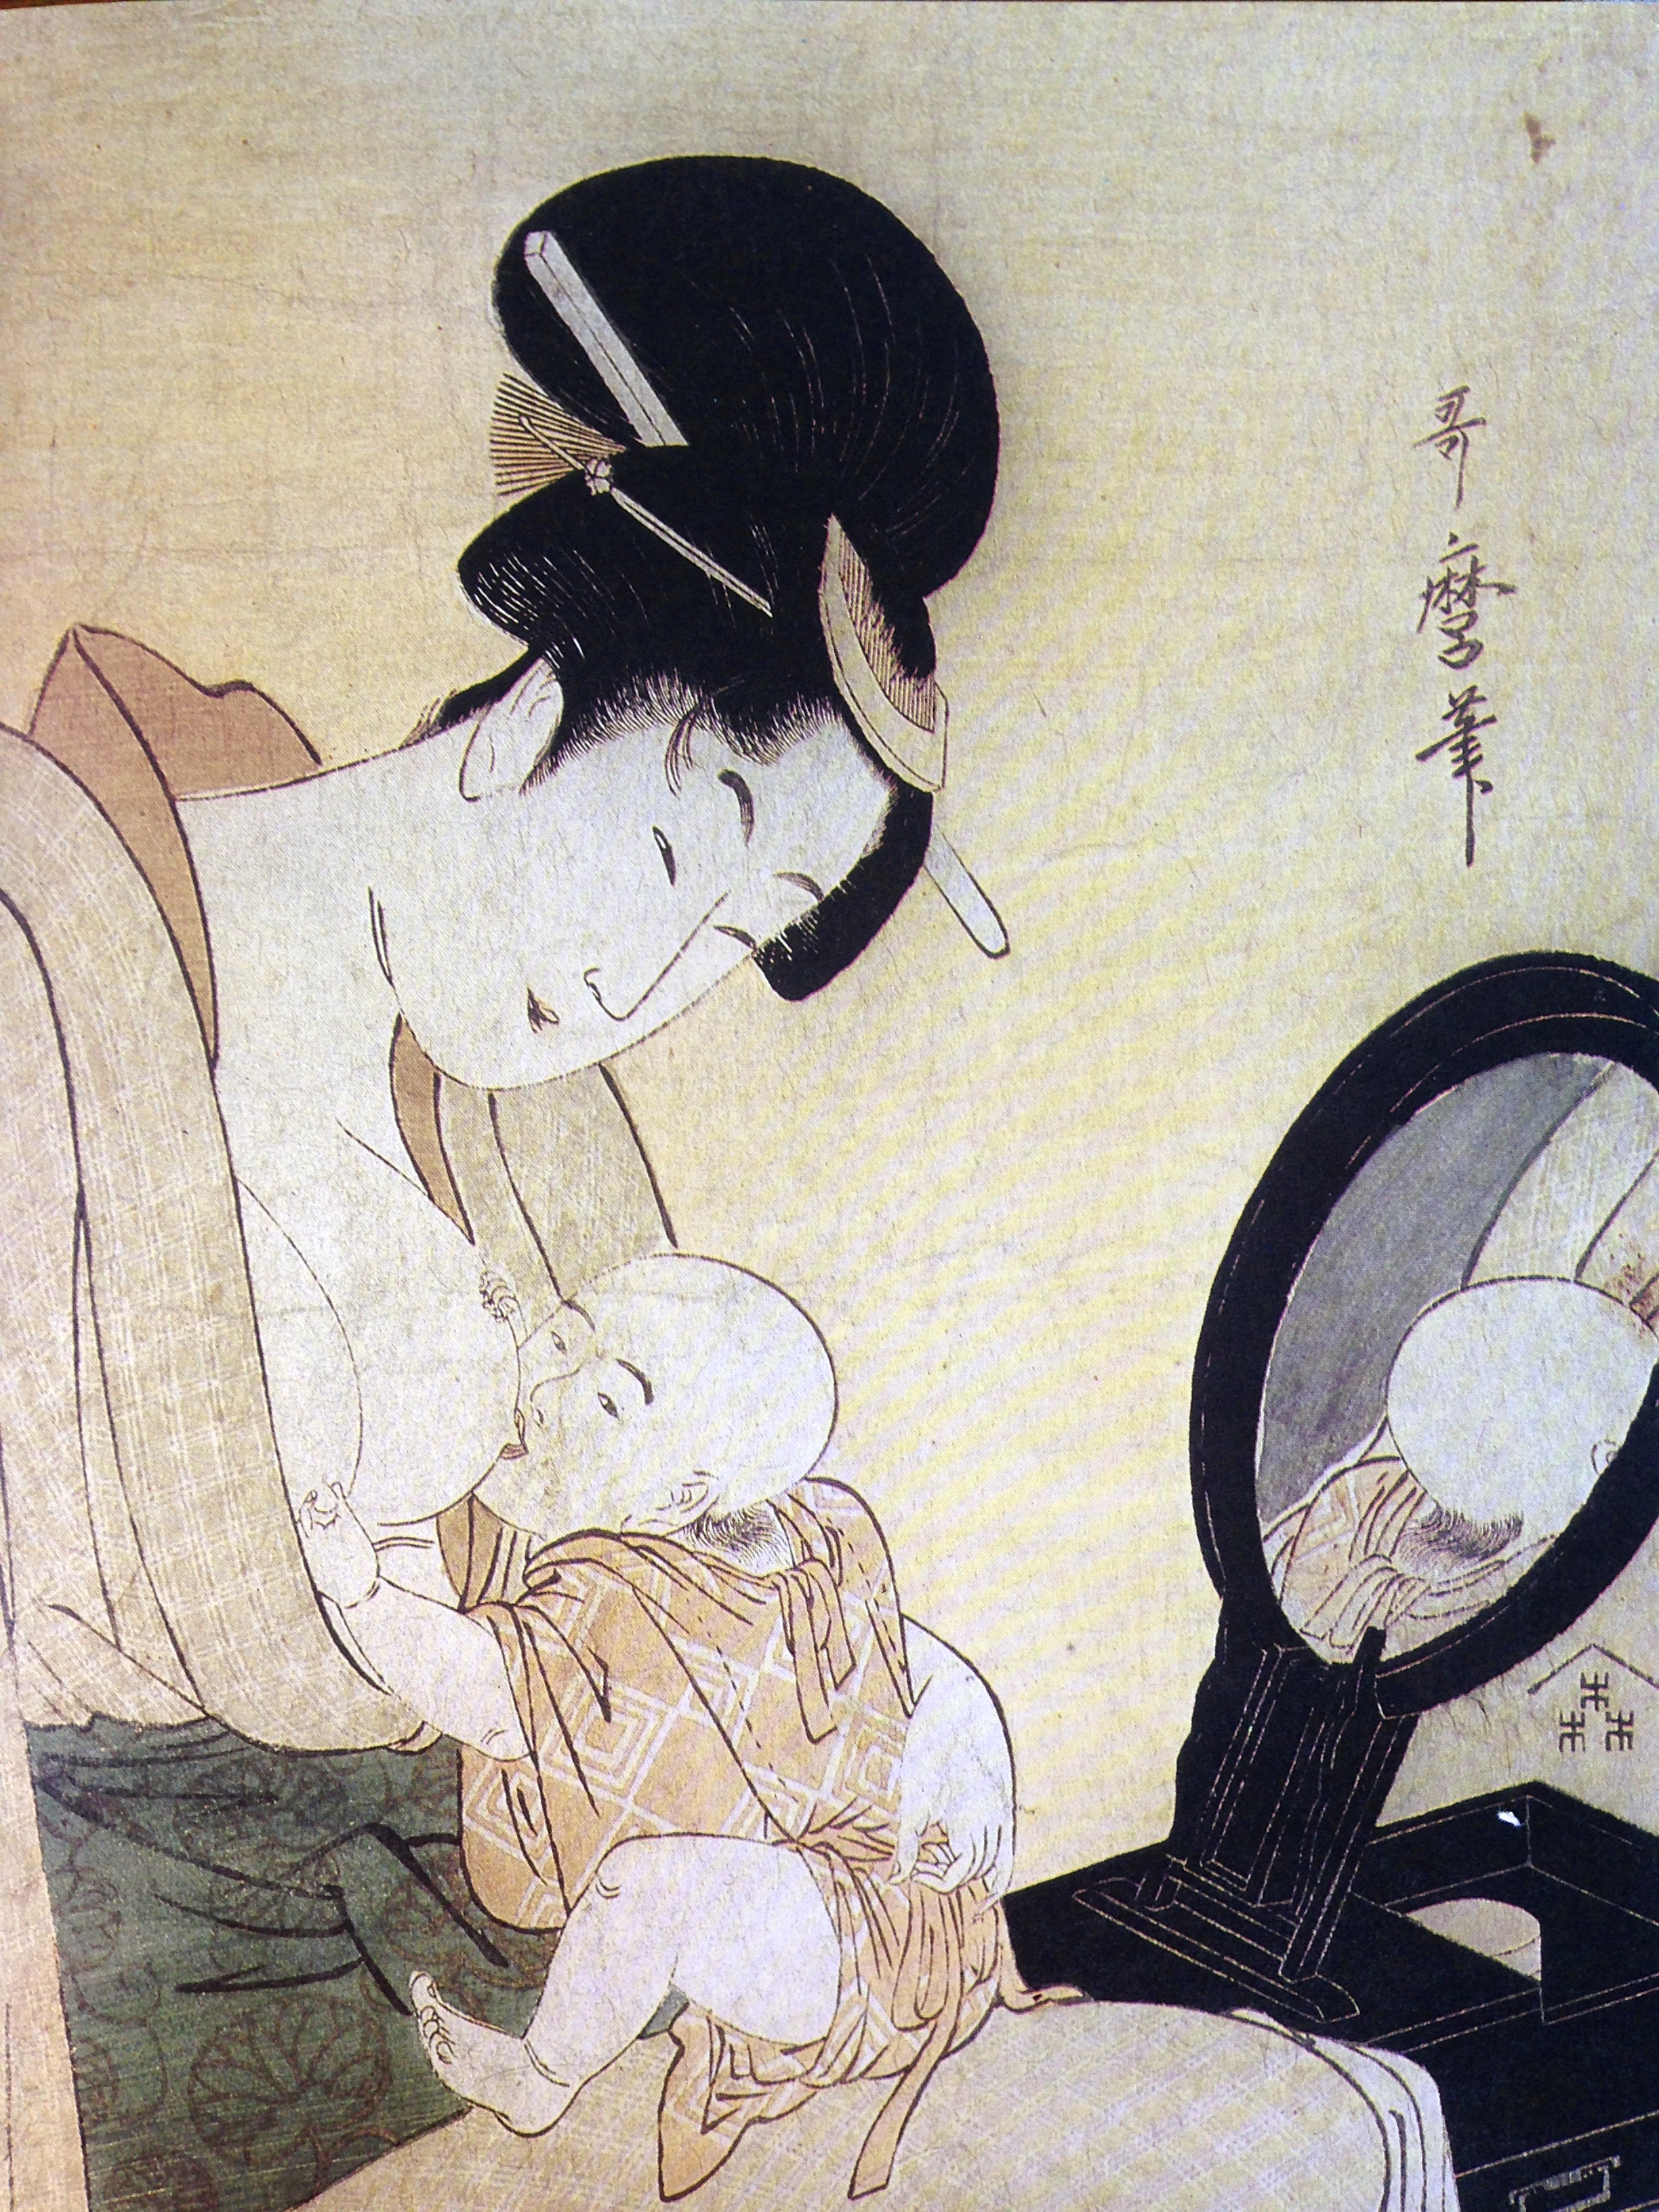 Utamao Breastfeeding - Natural Parenting through fine art